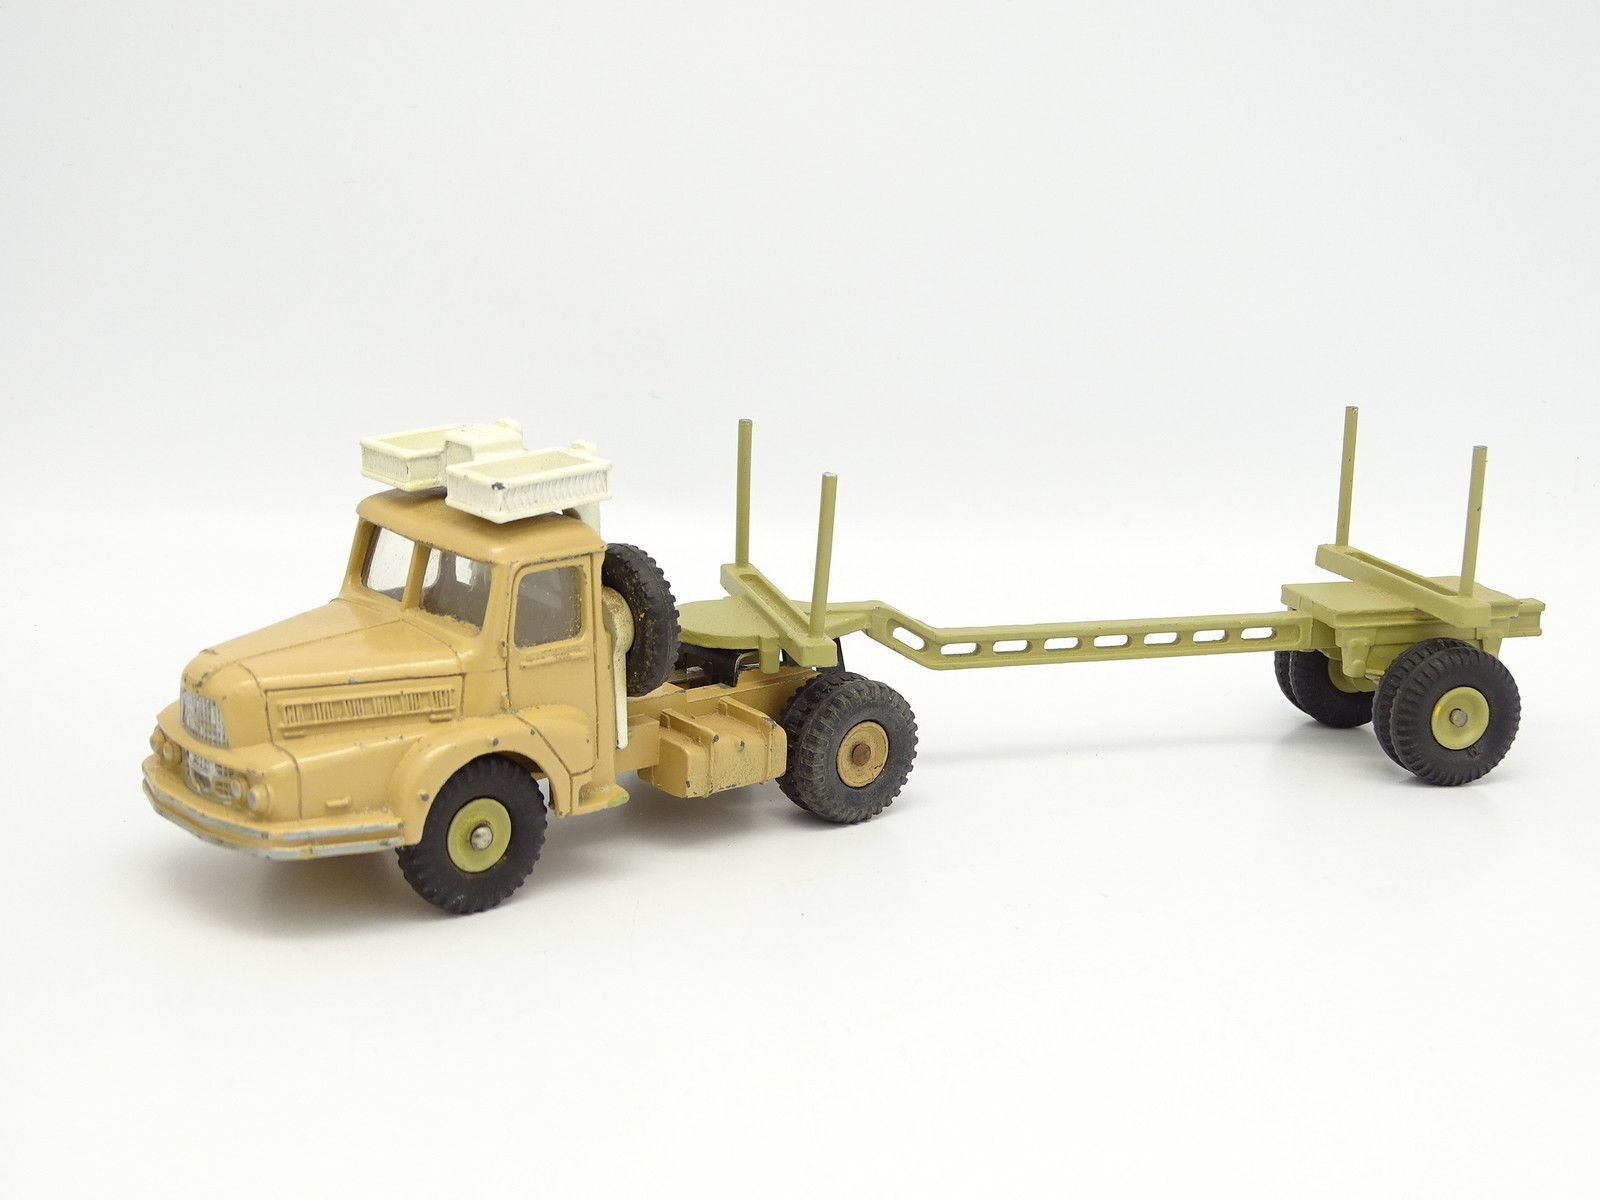 Dinky toys france 1 43 - unic sahara pipe lines transport